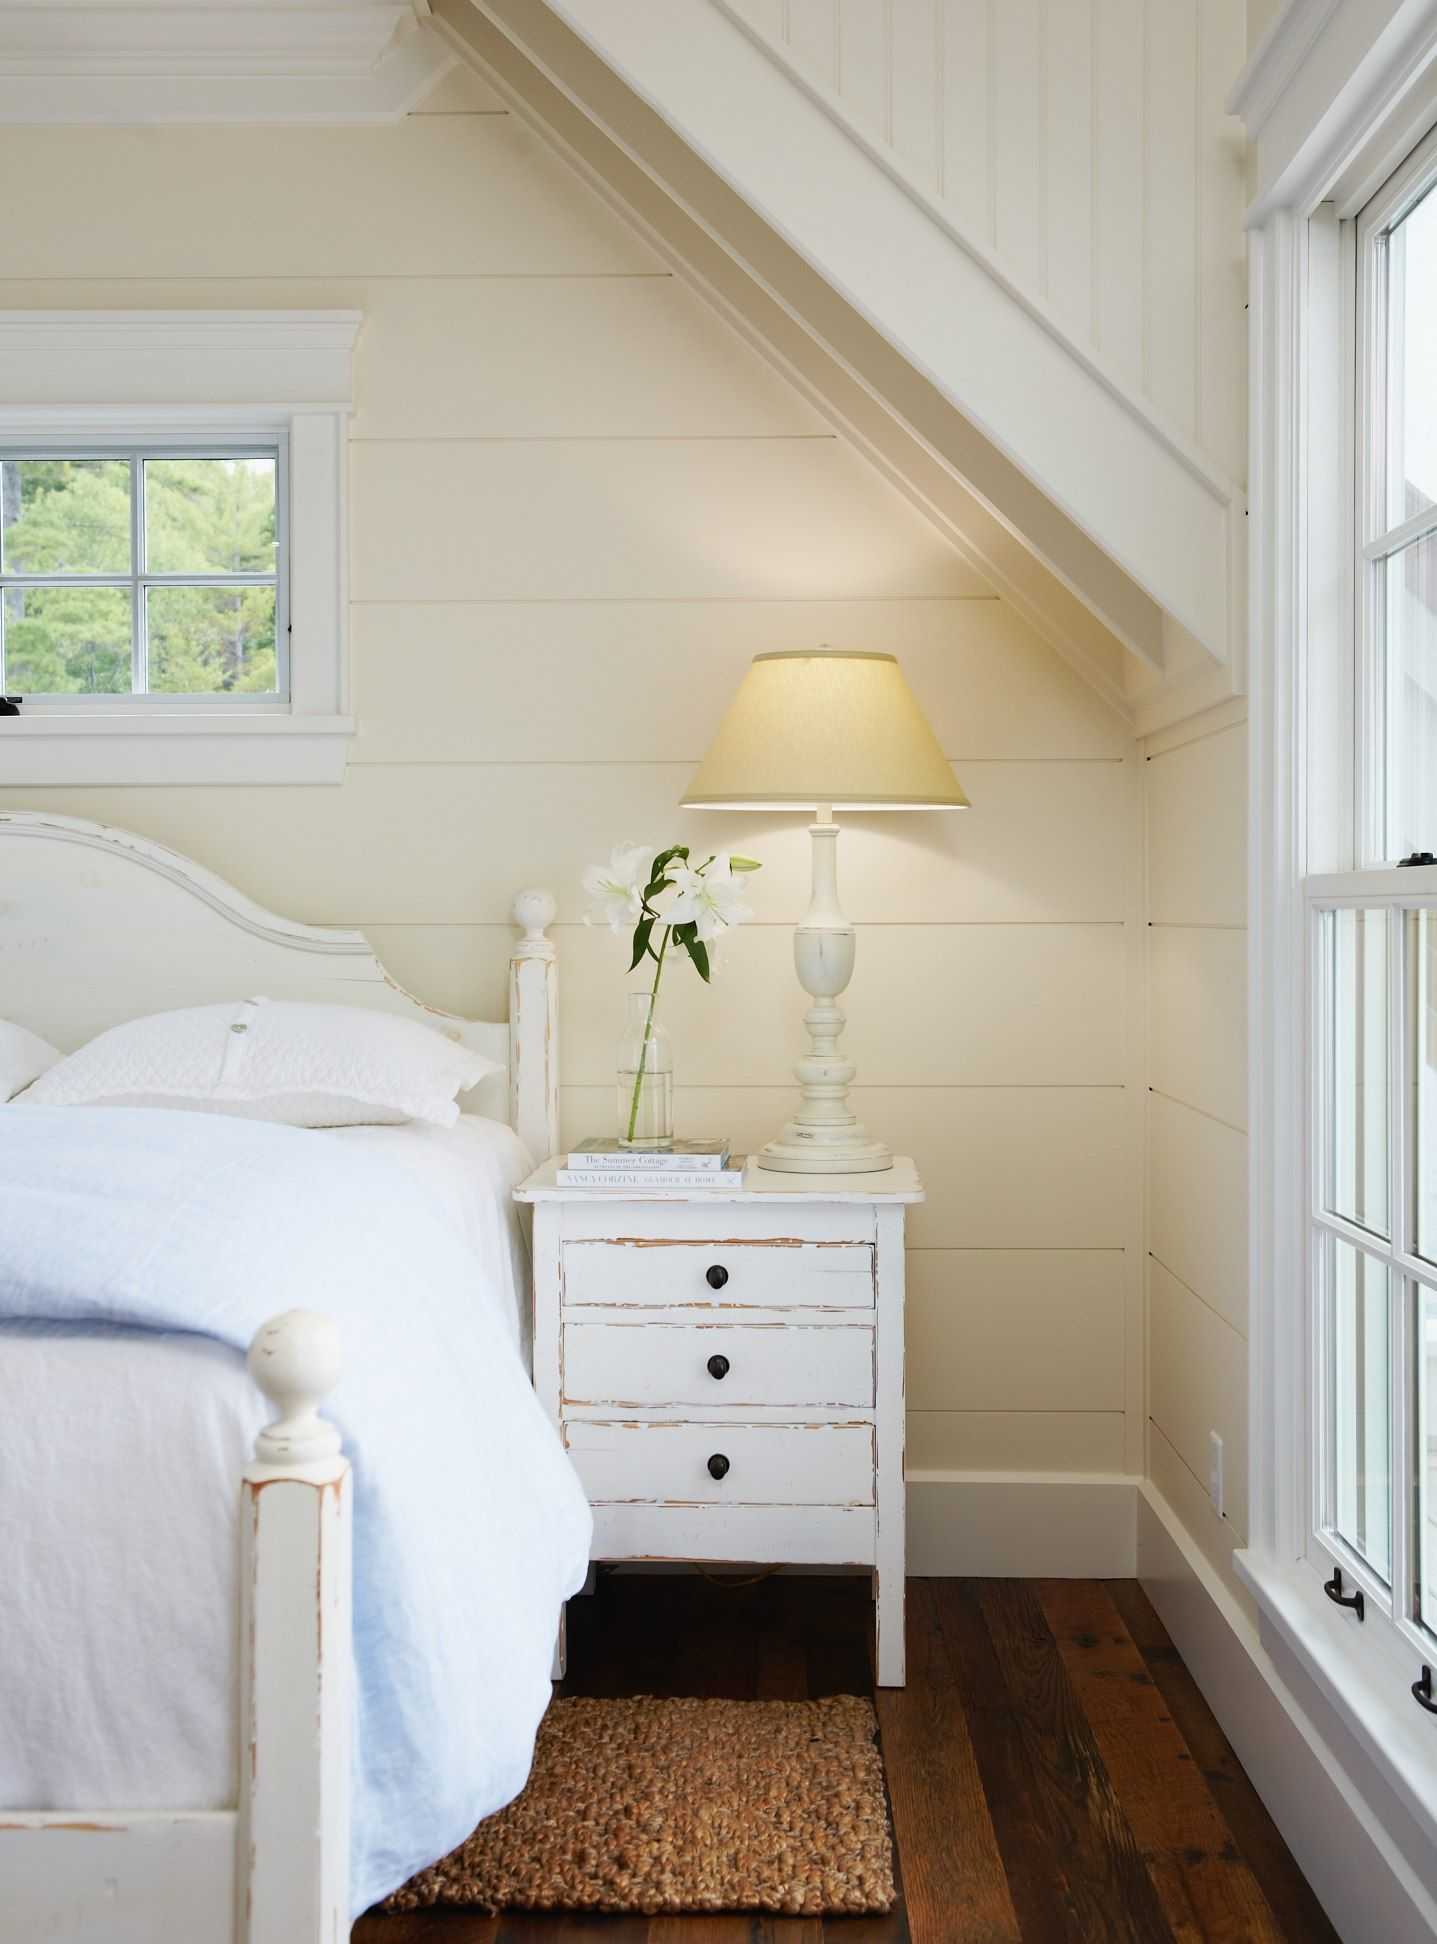 White bedside table with drawers jute or similar rug beside bed to